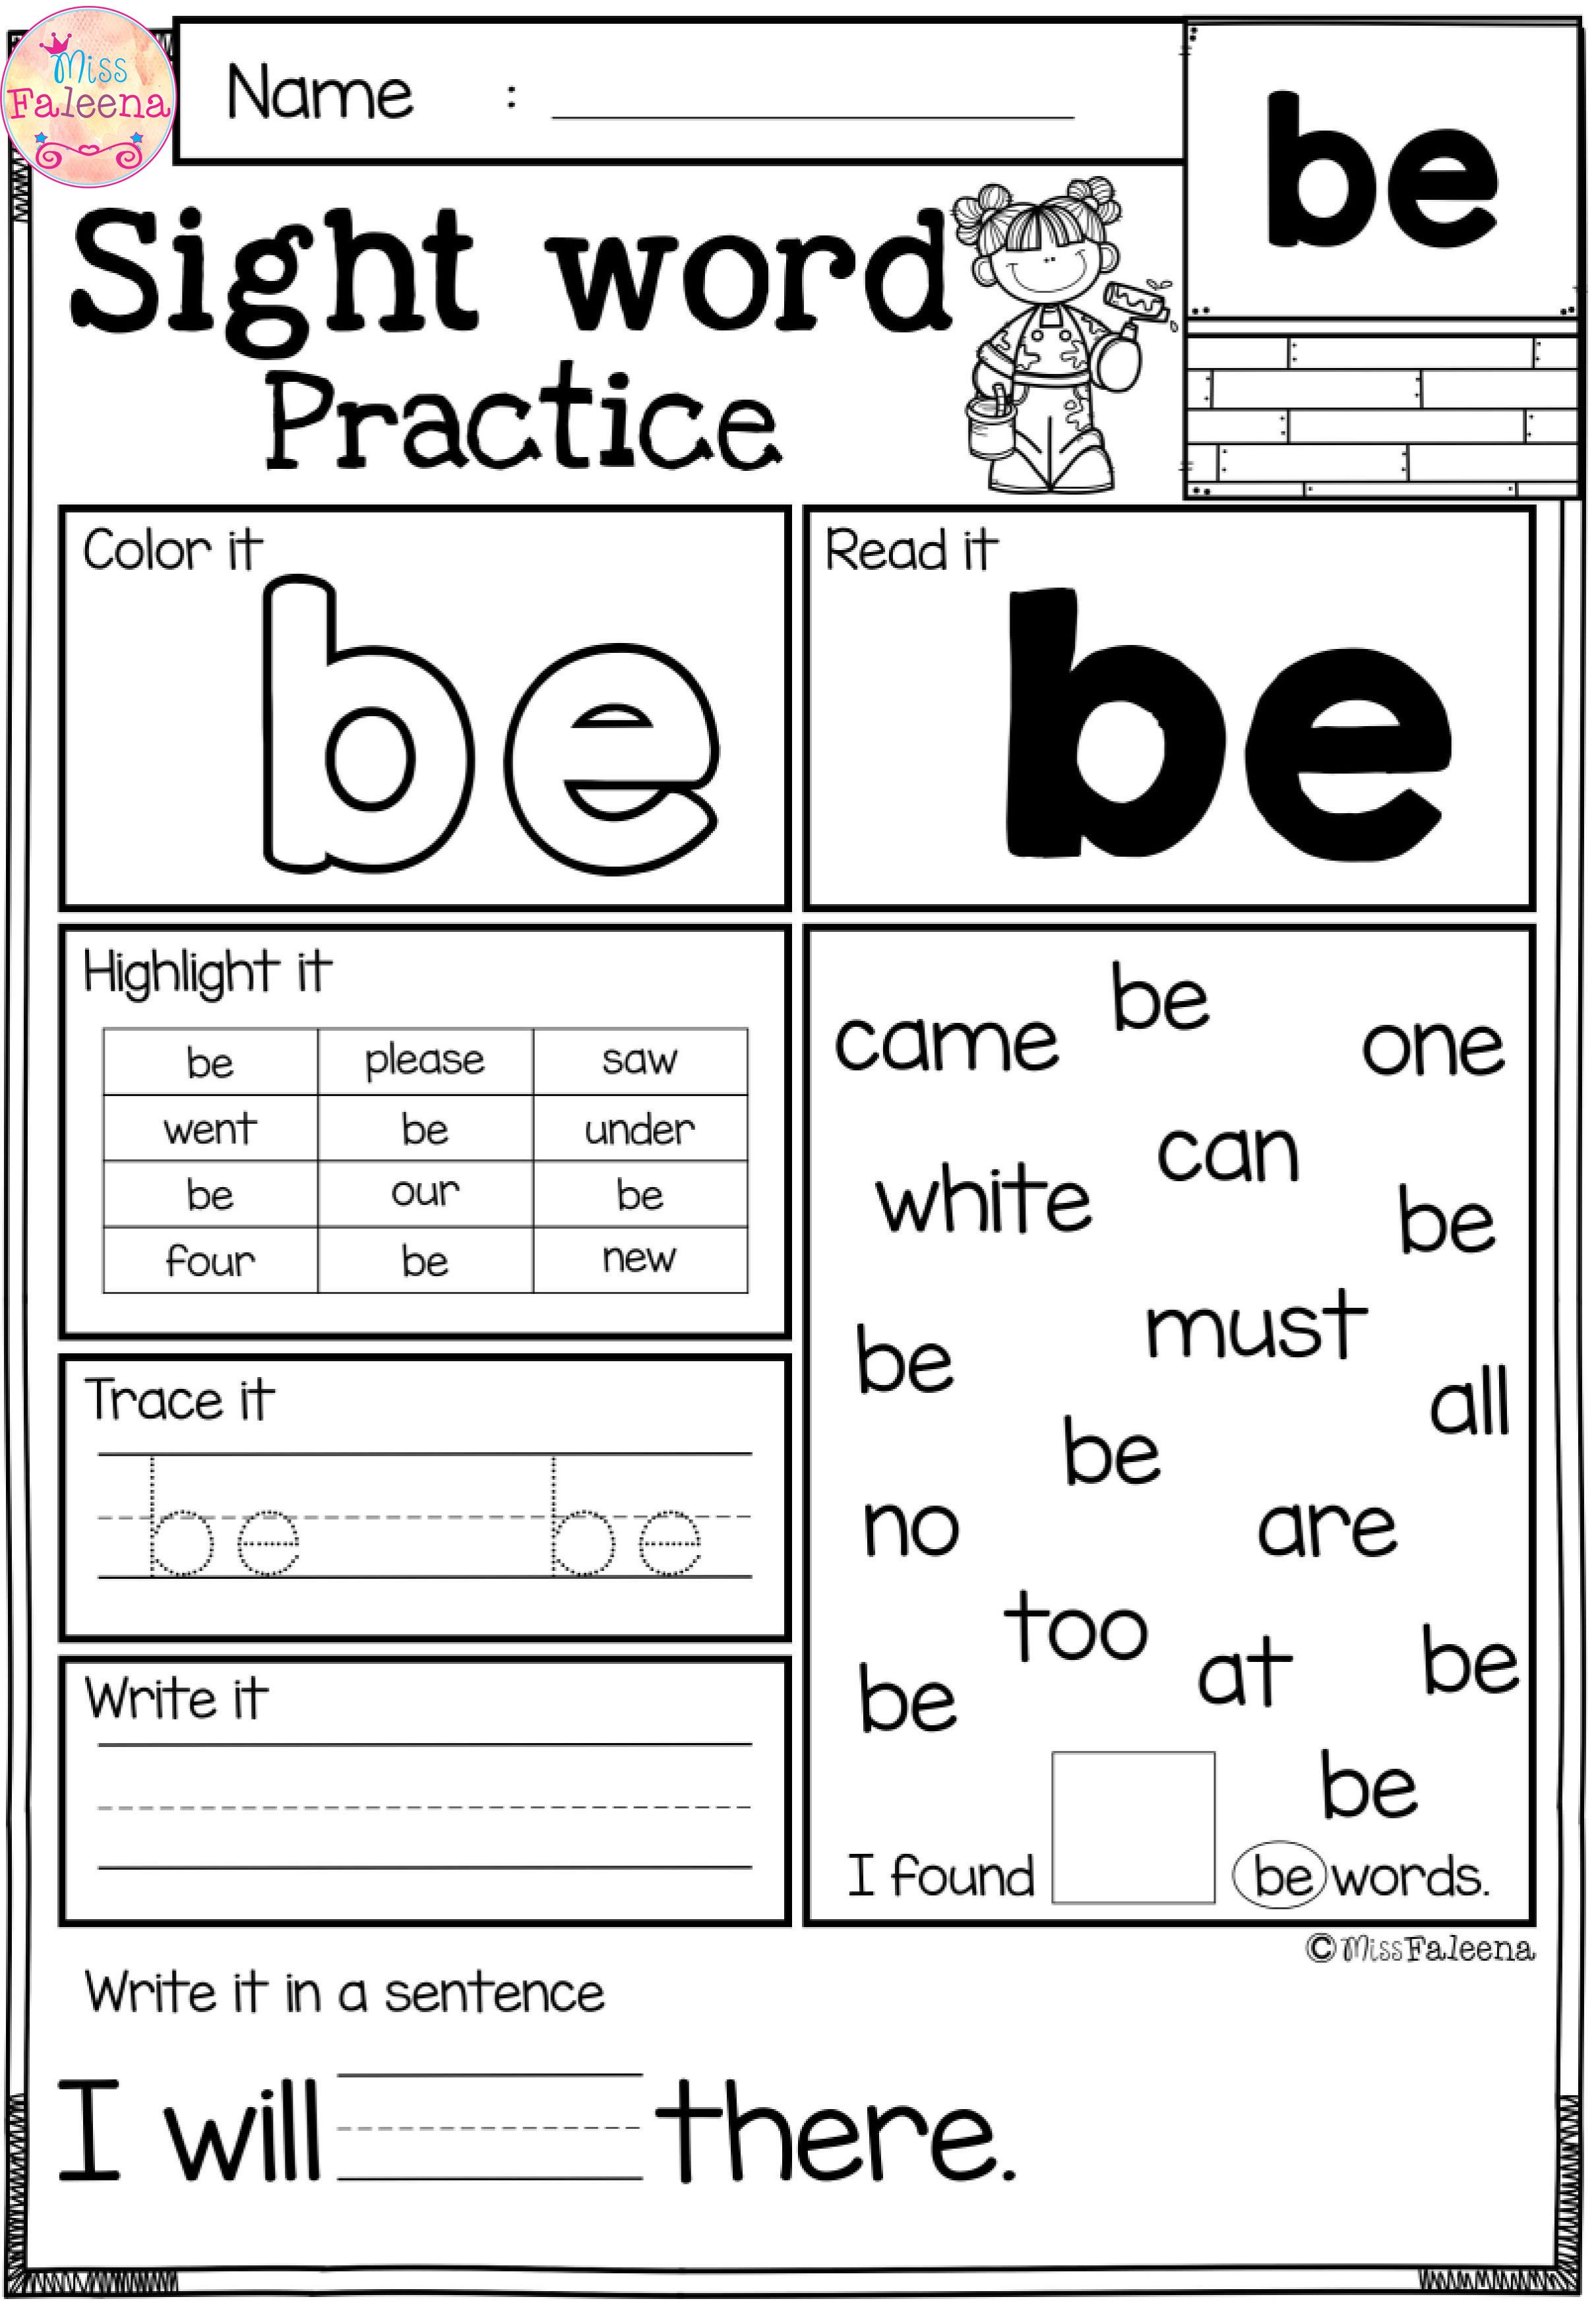 These Are Free Samples From My Sight Word Practice Bundle